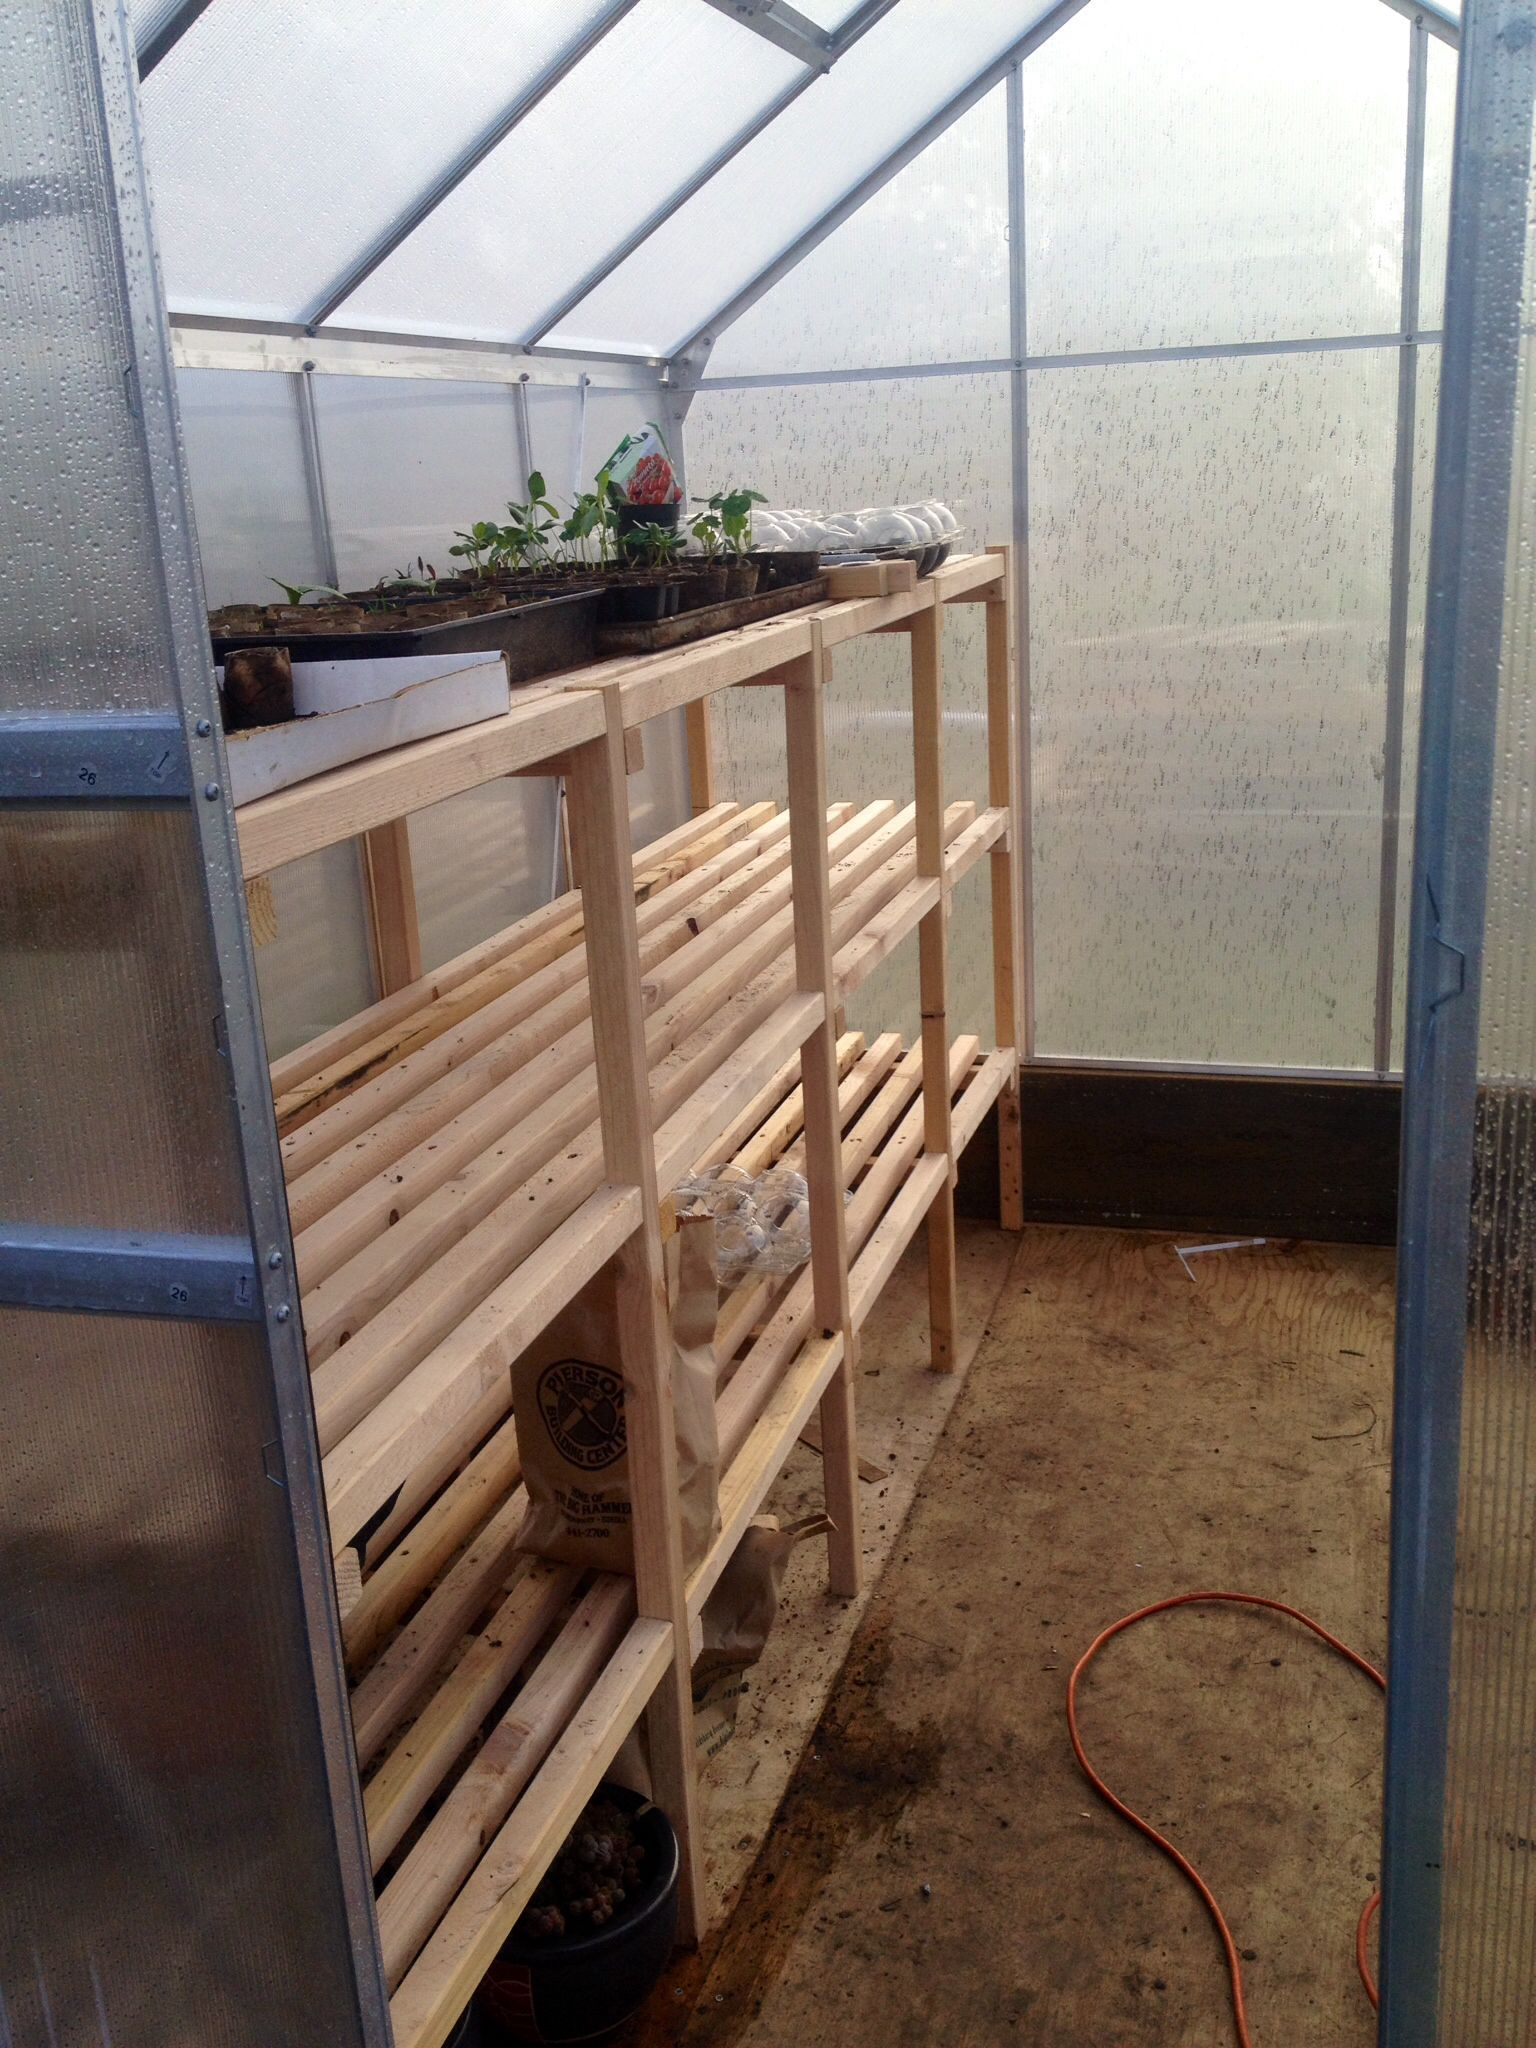 Greenhouse Shelving Inside Ideas Your For Xinside Shelving Ideas For Your 6x8 Greenhouse Greenhouse Plans Greenhouse Shelves Greenhouse Gardening